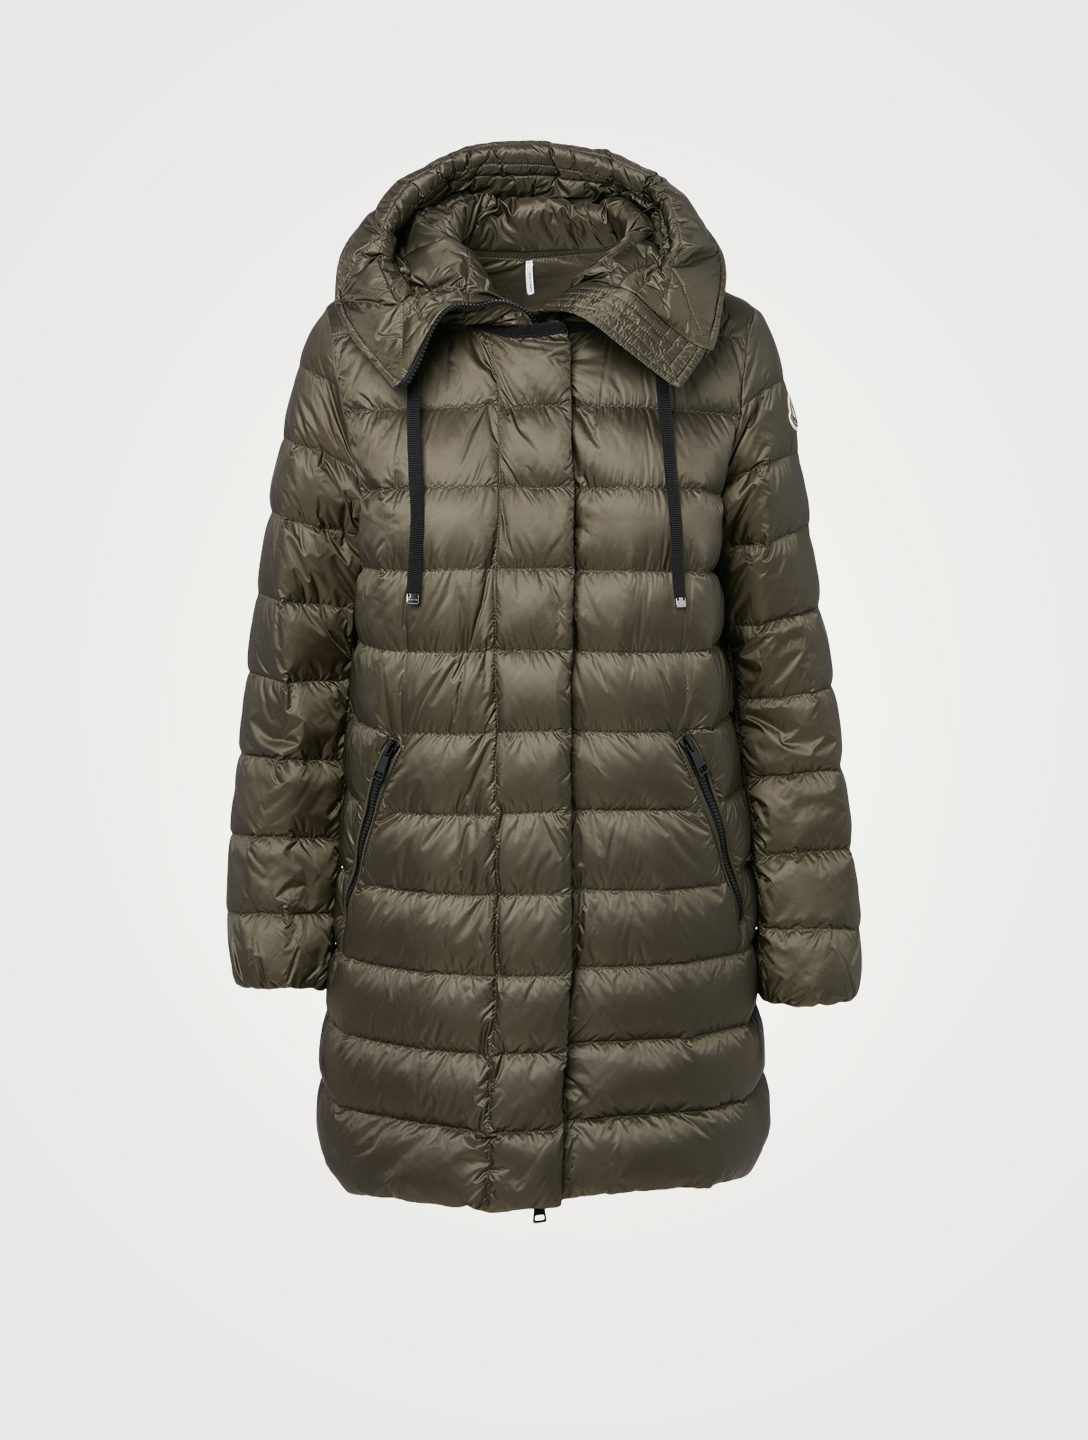 MONCLER Gnosia Down Puffer Coat Women's Green